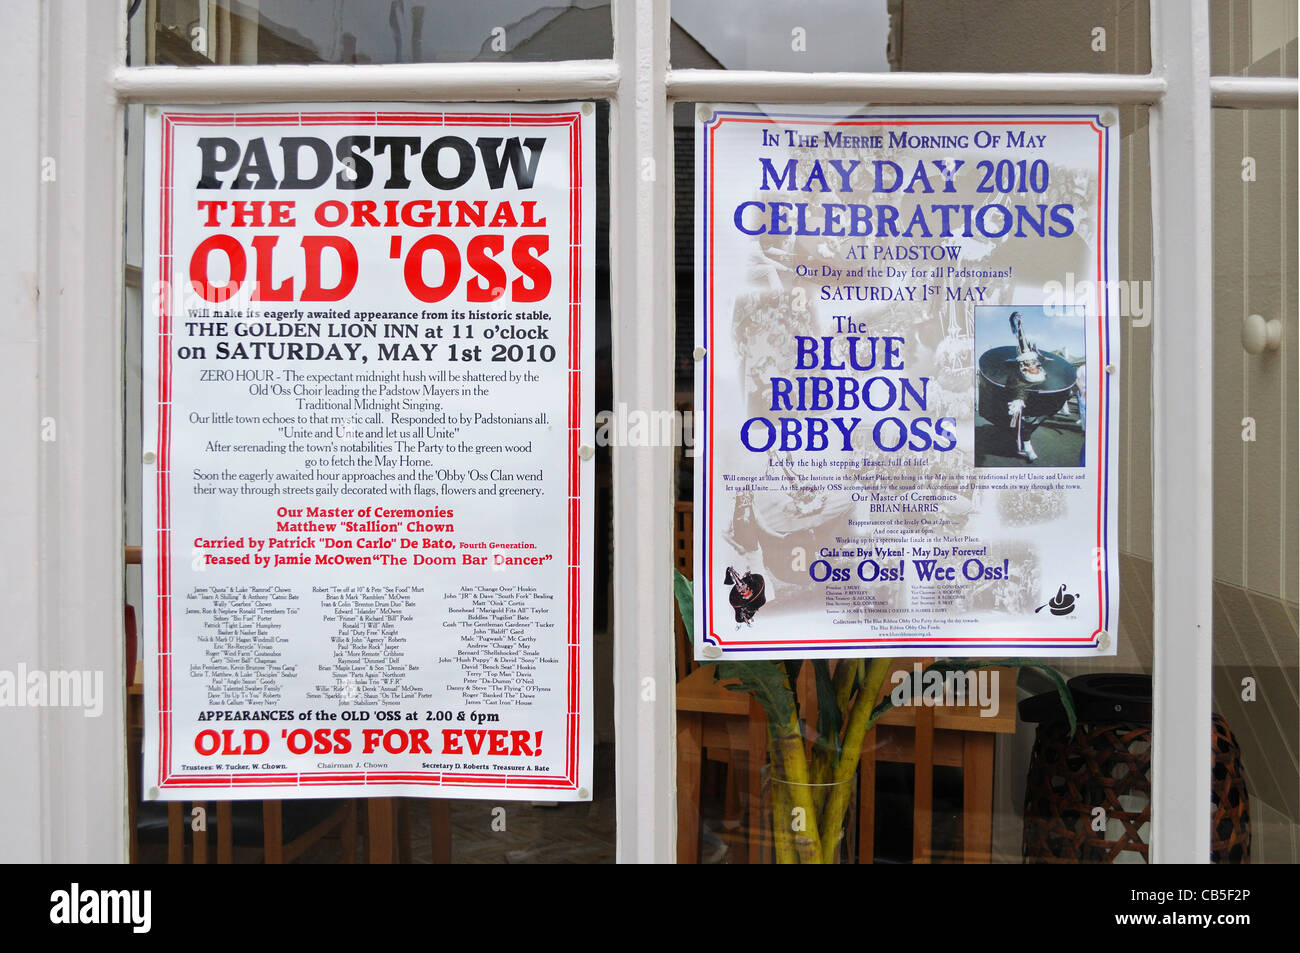 Posters in shop window advertising the annual ' obby oss ' may day celebrations in Padstow, Cornwall, UK - Stock Image